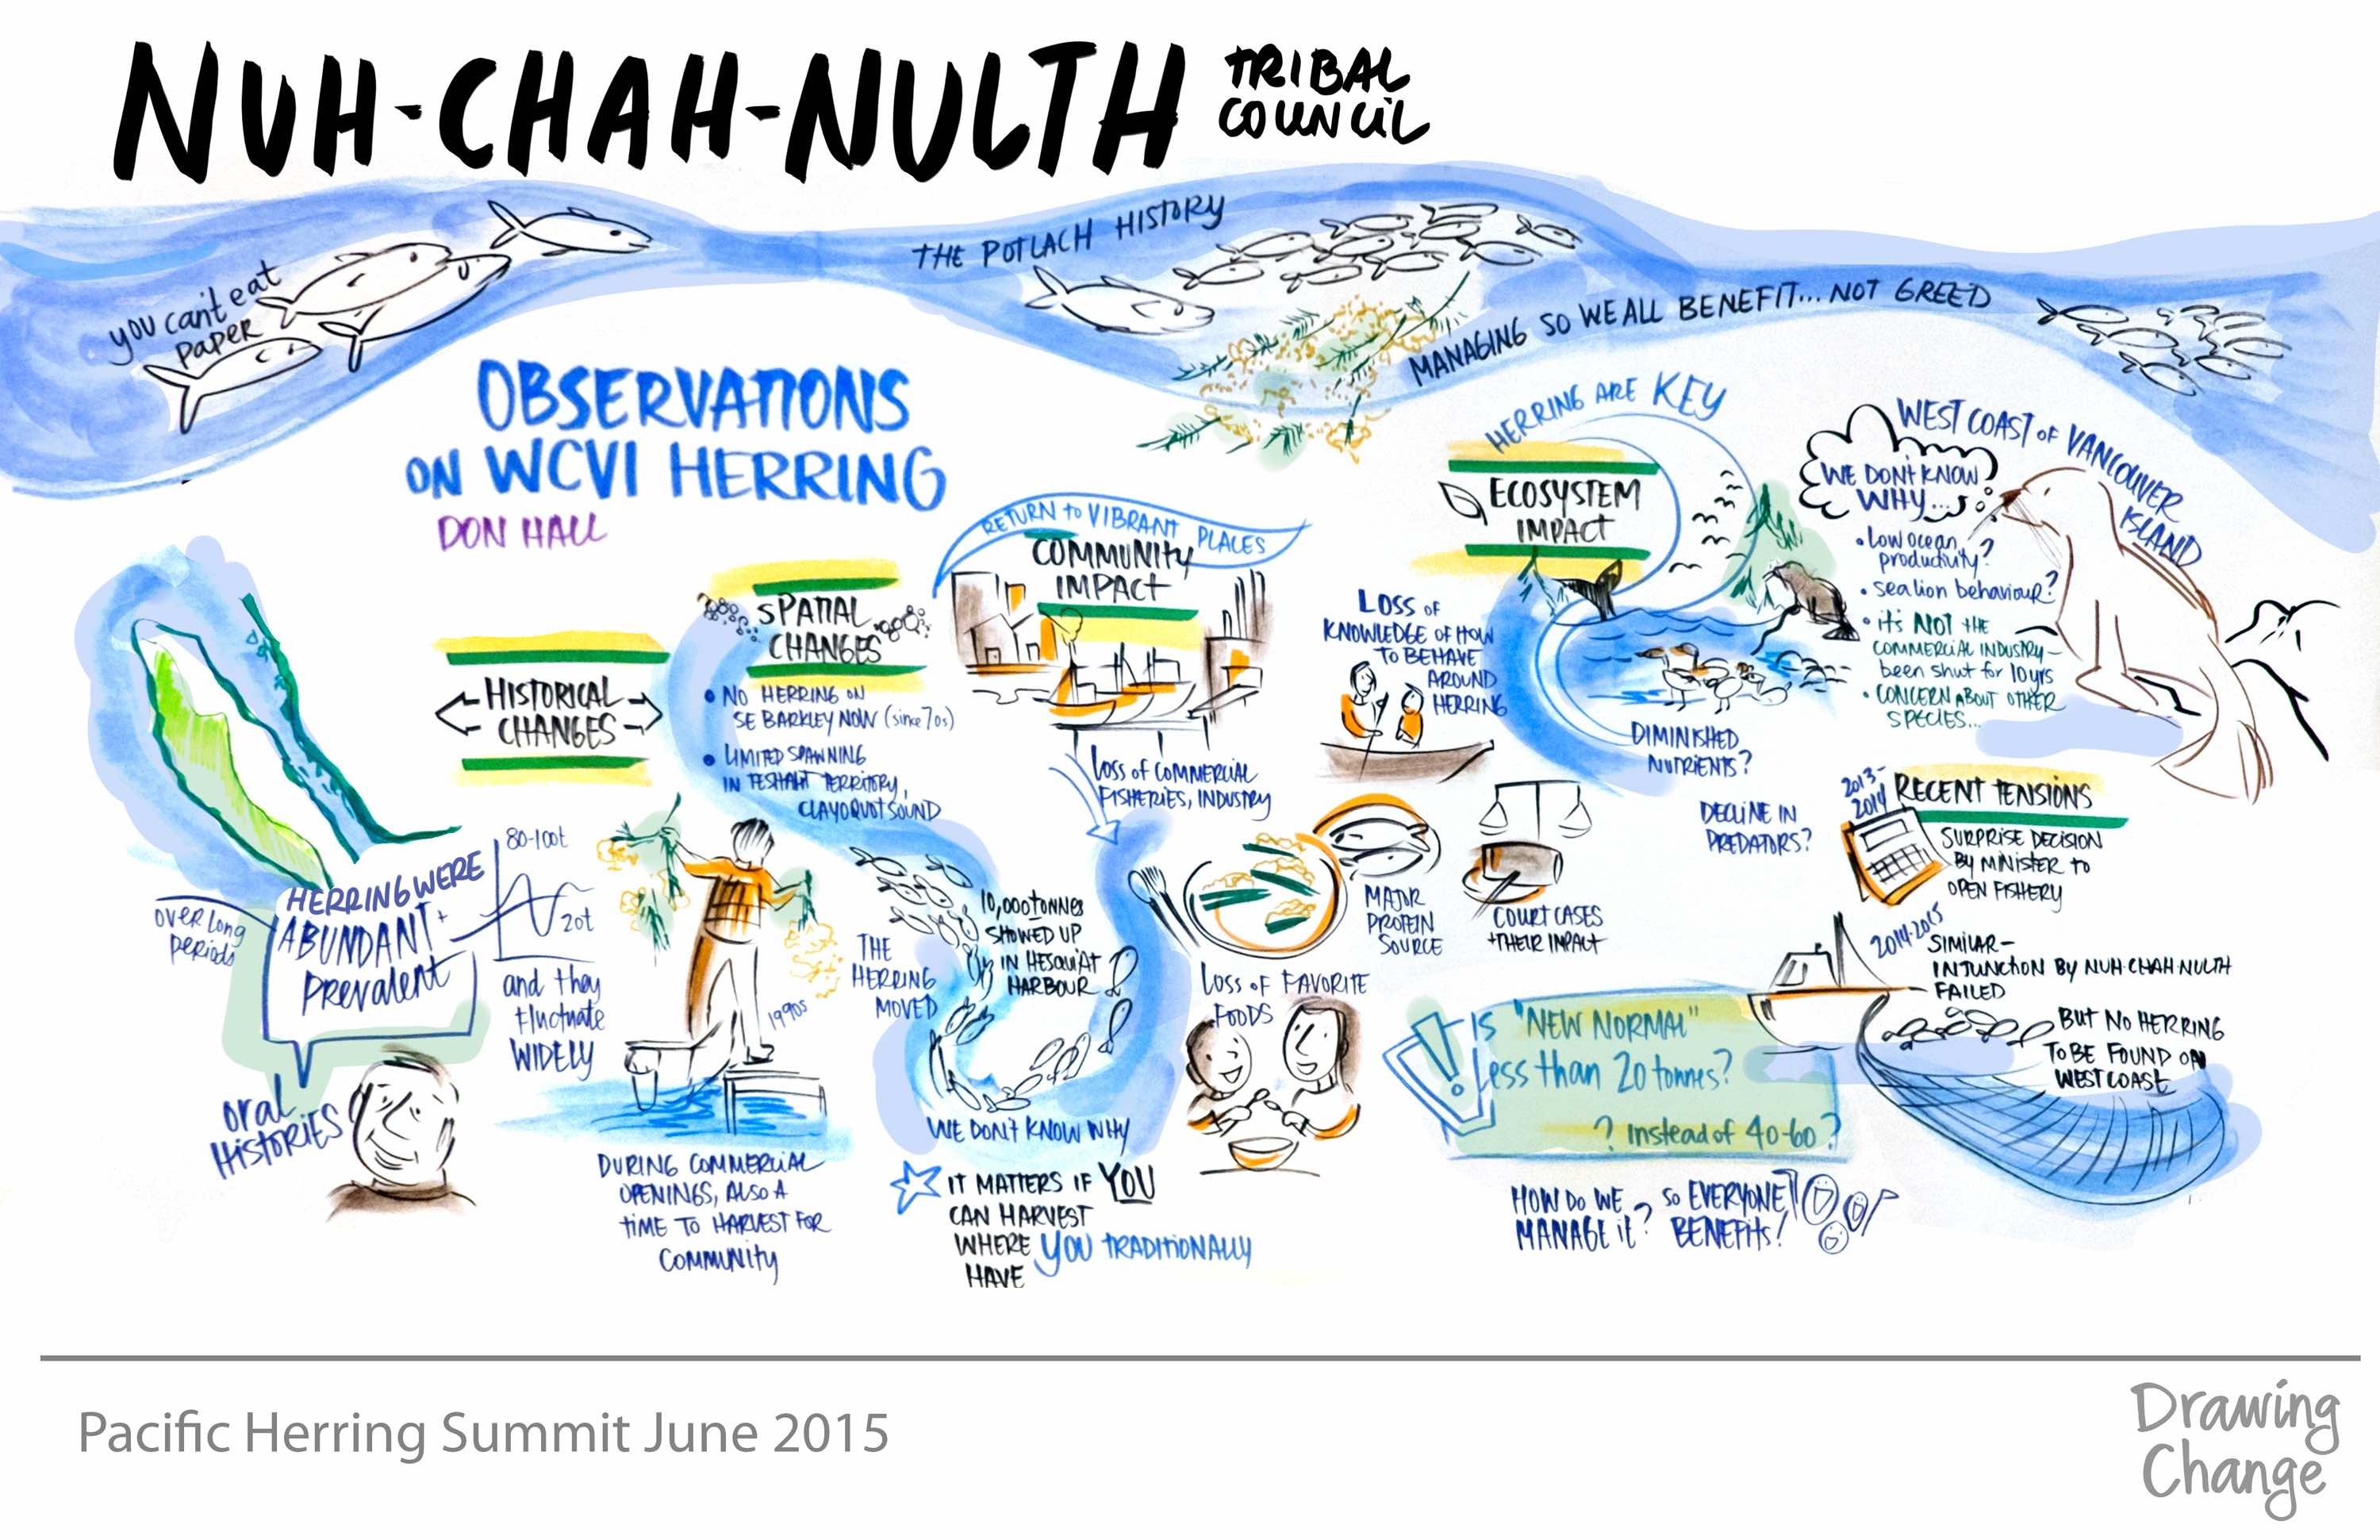 OMF Herring Nuh-Chah-Nulth graphic recording